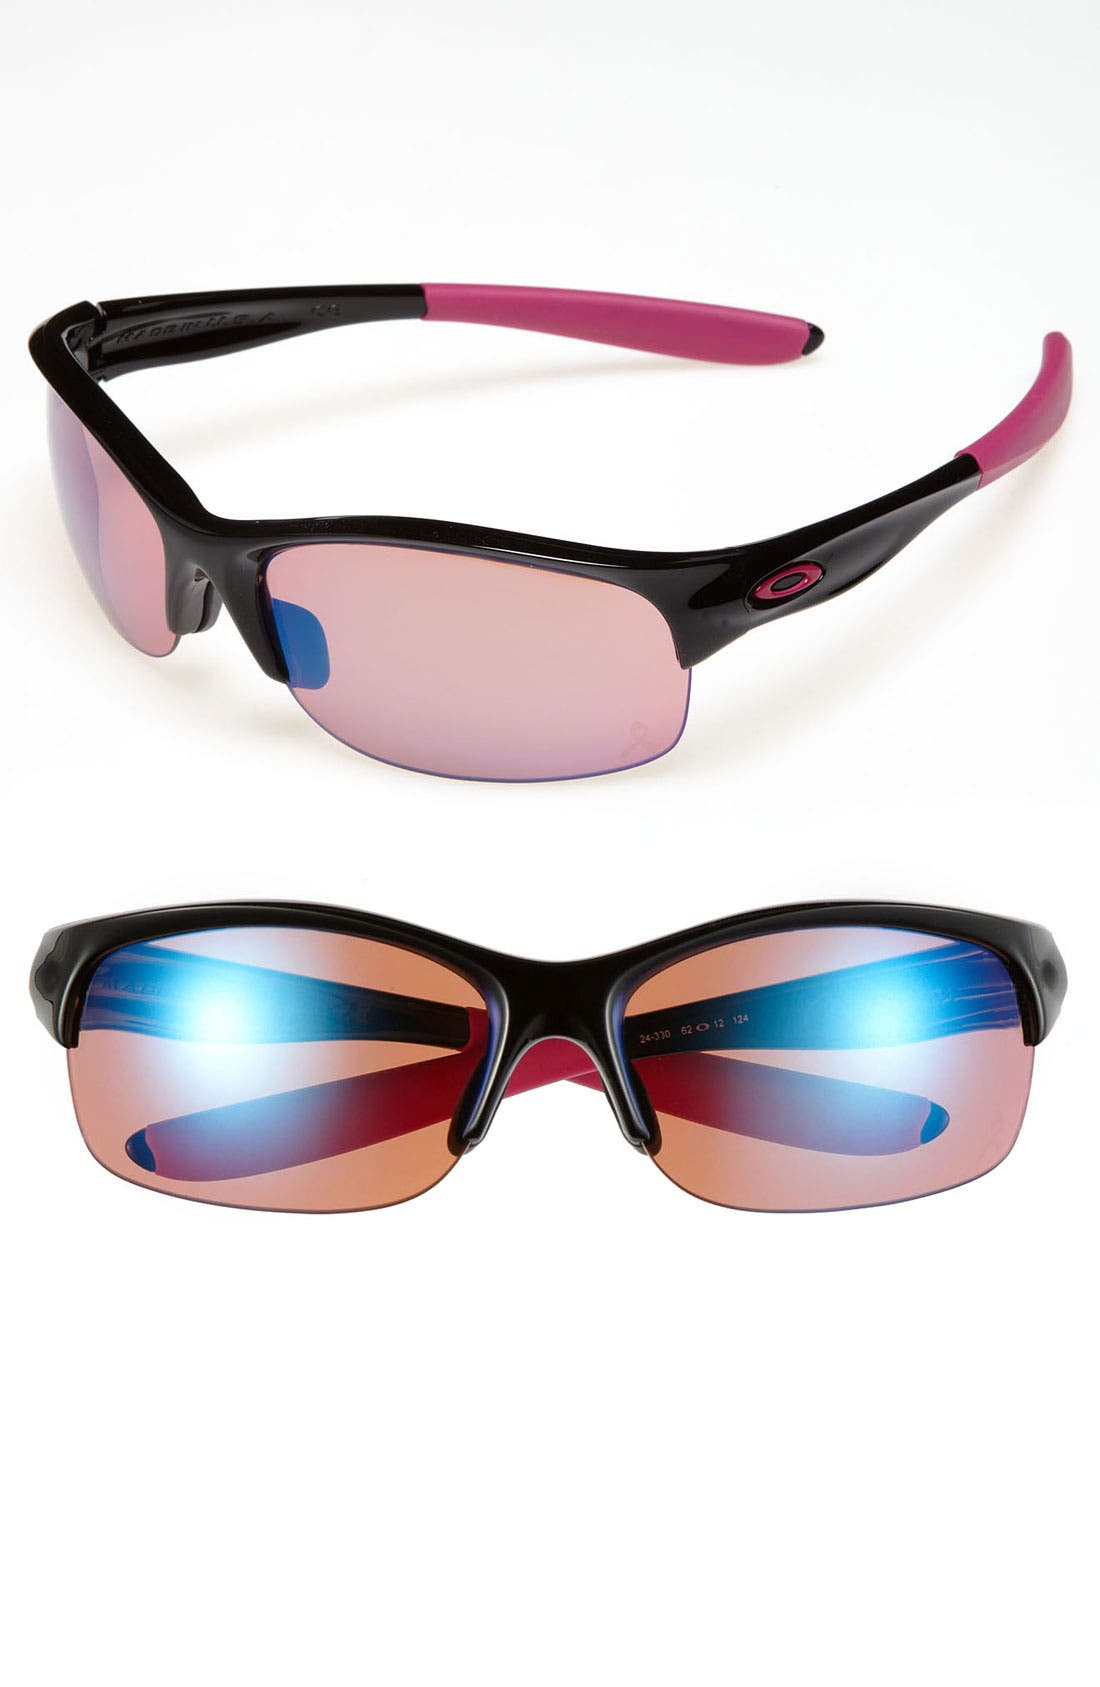 Main Image - Oakley 'Commit® SQ - Breast Cancer Awareness Edition' 62mm Sunglasses